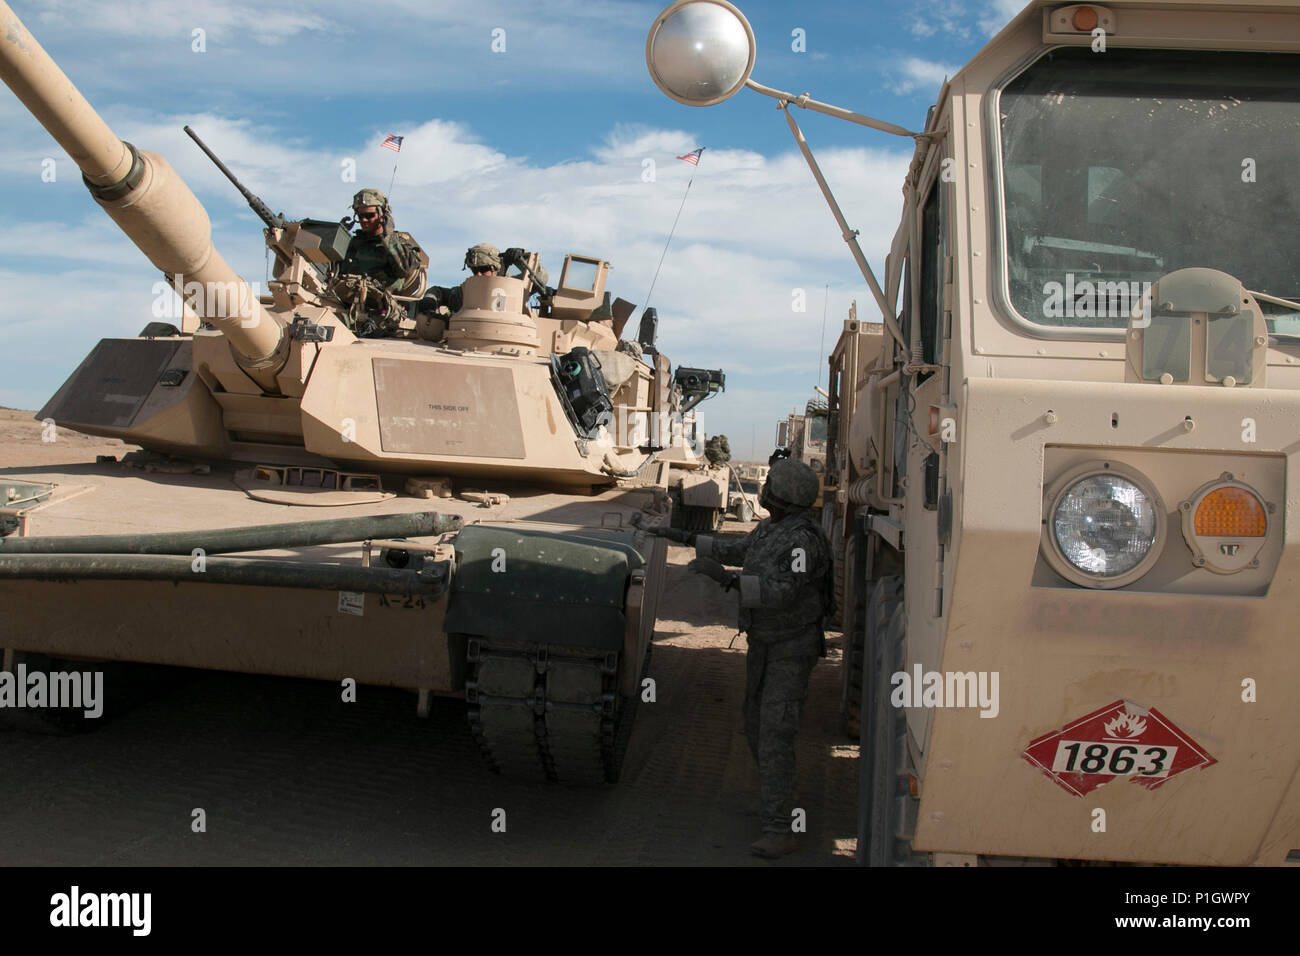 U.S. Soldier M1A2 Abrams tank crews from the 3rd Battalion, 8th Cavalry Regiment, 3rd Armored Brigade Combat Team, 1st Cavalry Division roll through a fuel point during the live-fire portion of the brigade's during National Training Center 17-01 at Fort Irwin, Calif., Oct. 13, 2016. NTC 17-01 provides U.S. military units and personnel with realistic pre-deployment training scenarios in all aspects of armed conflict. (U.S. Army photo by Staff Sgt. Leah Kilpatrick) Stock Photo